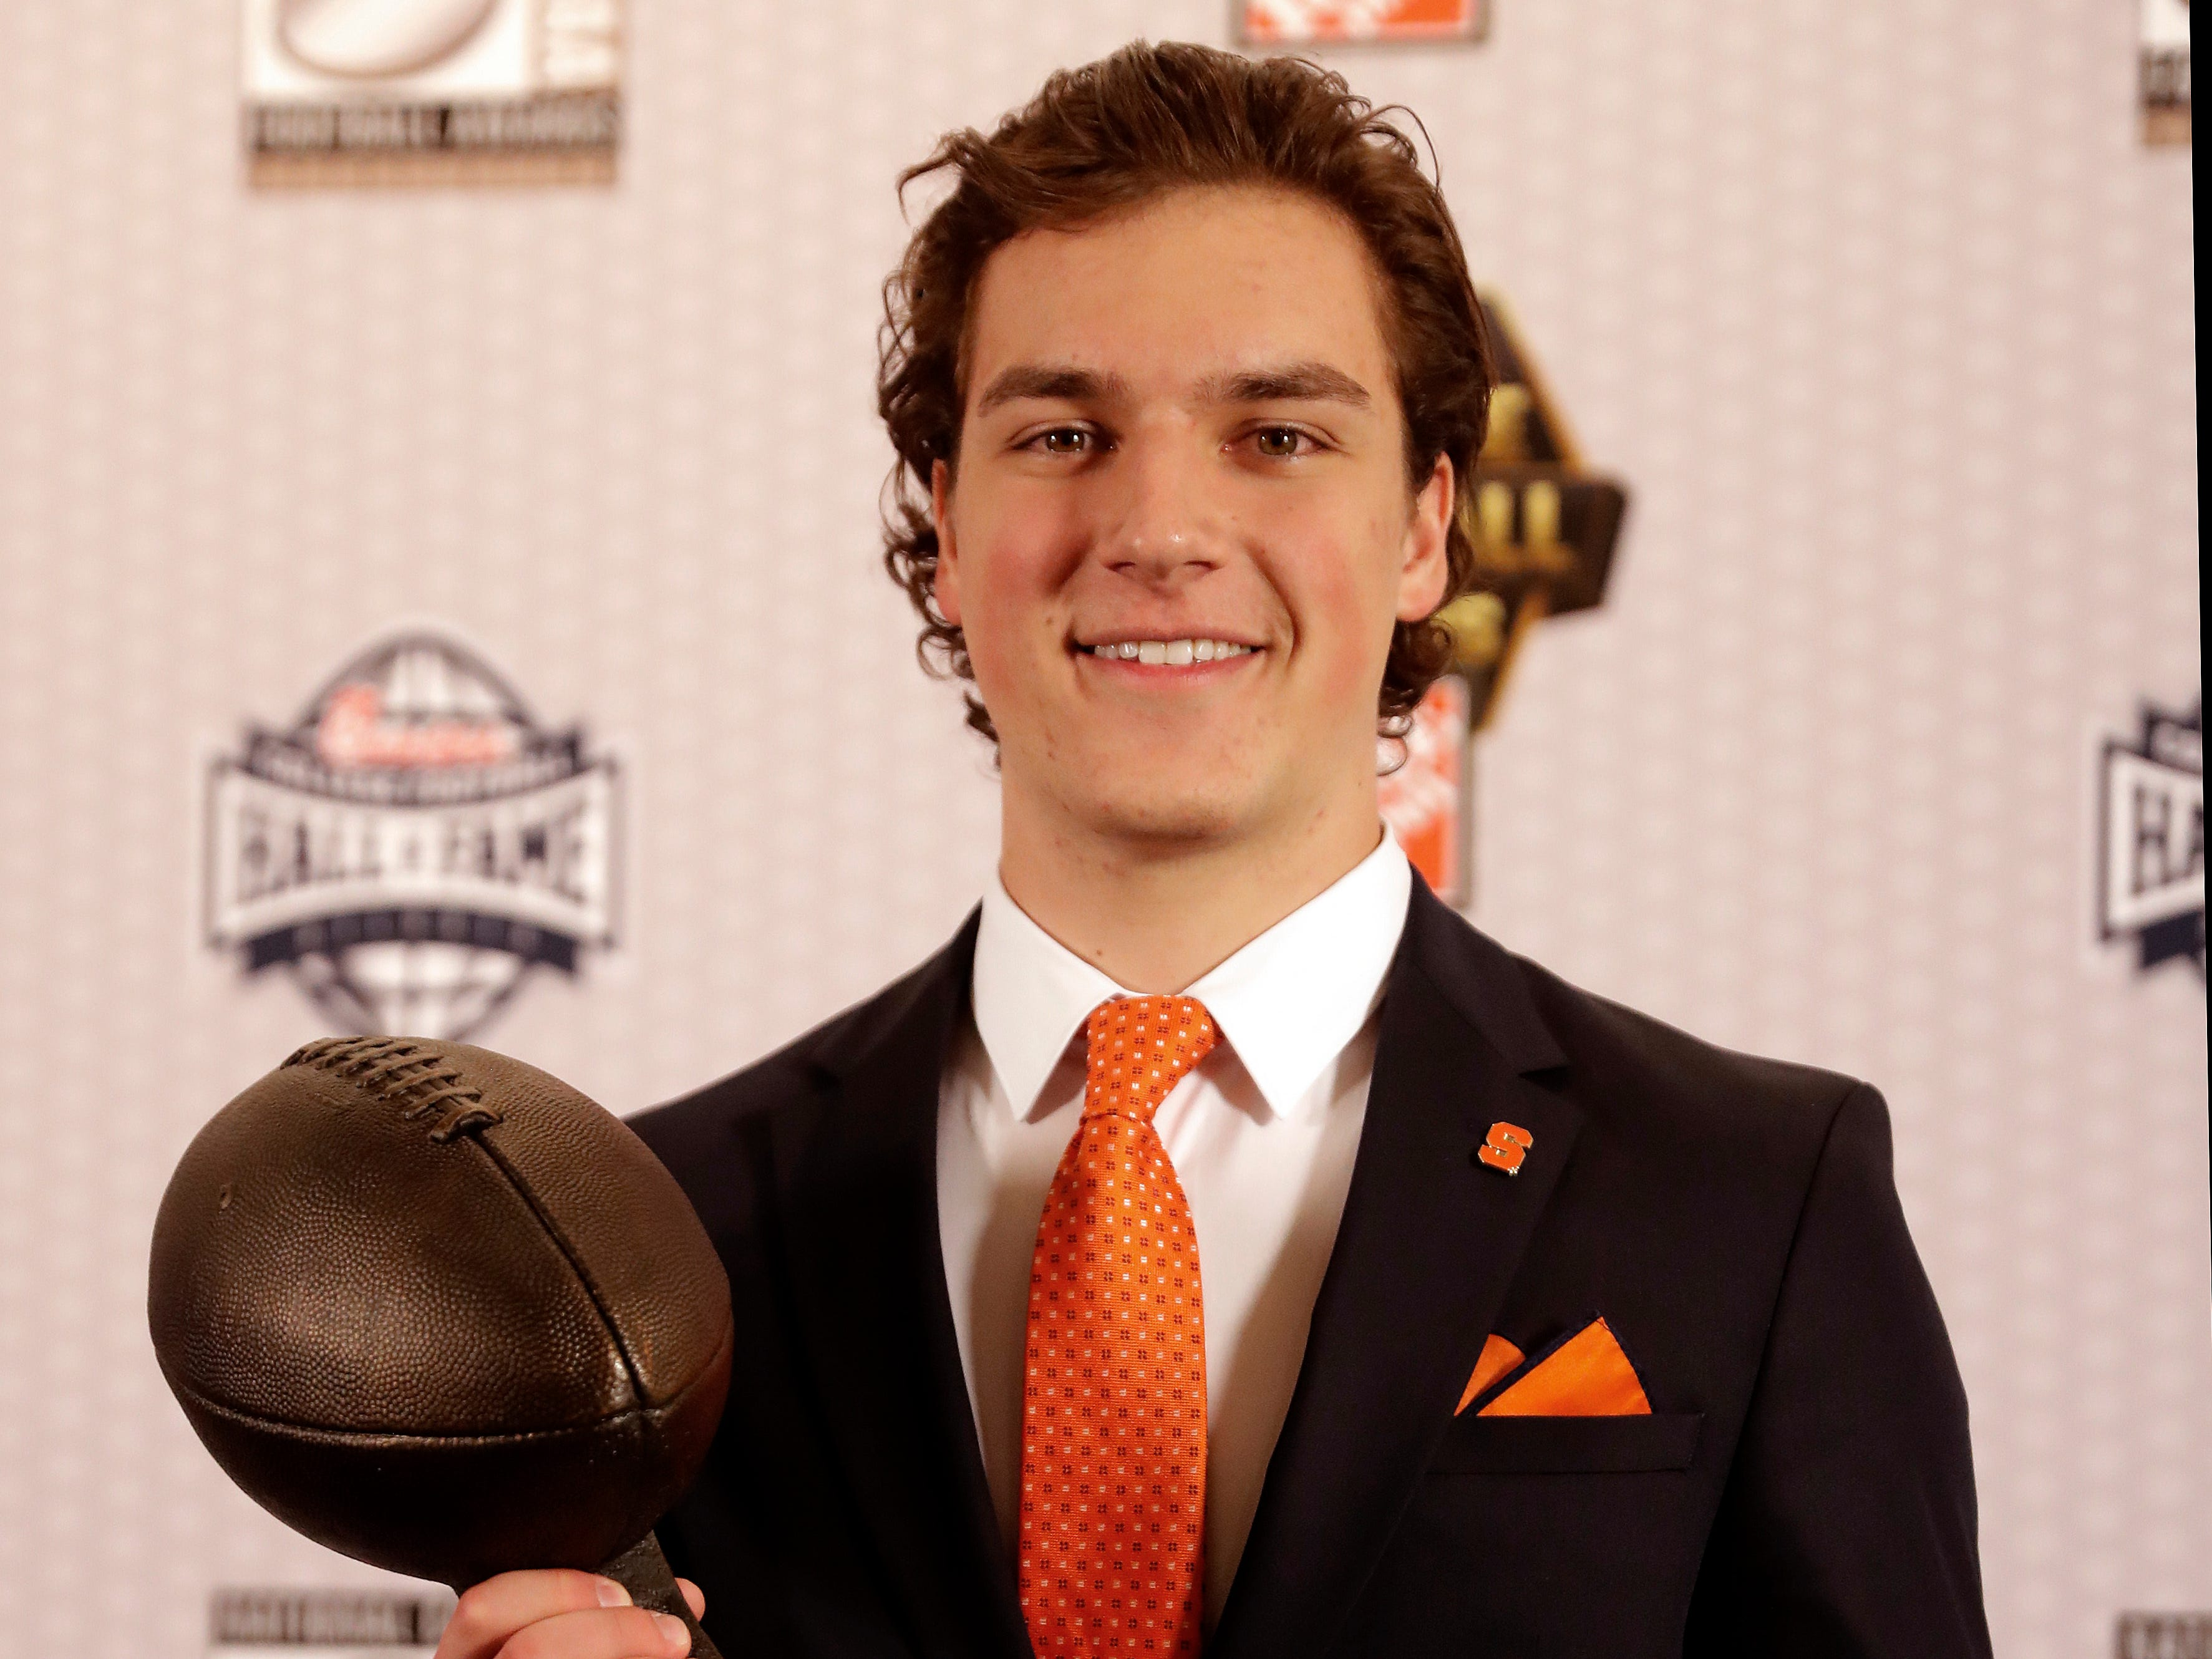 Syracuse's Andre Szmyt poses with the trophy after winning The Lou Groza  Award for being the best kicker in college football.